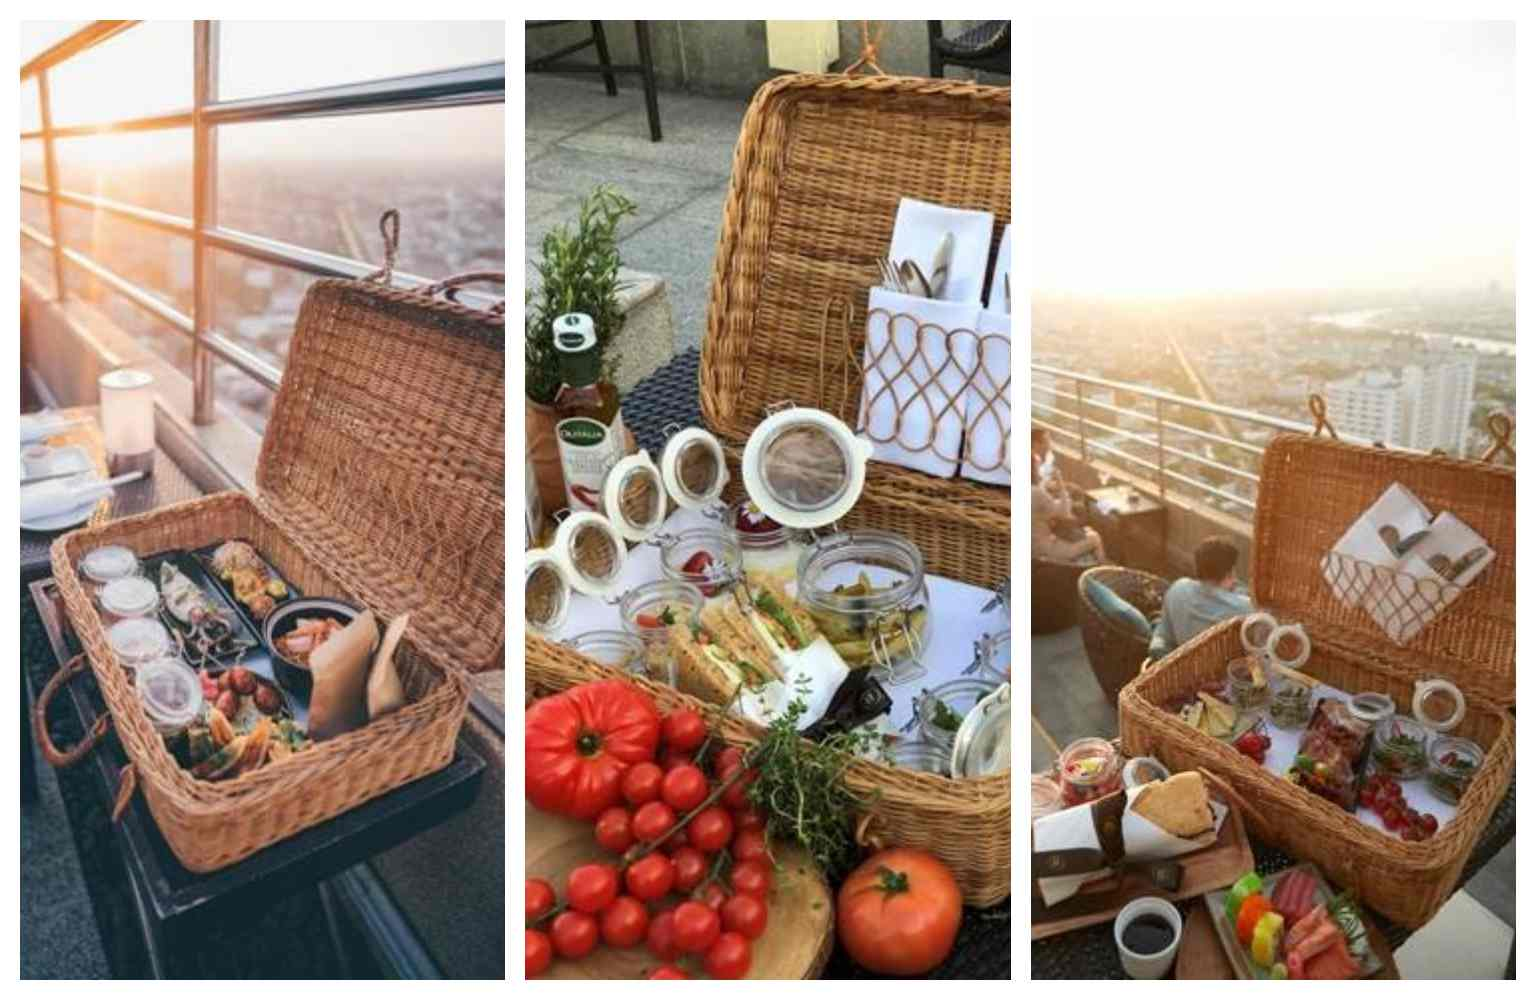 The three different picnic baskets of the Three Sixty Lounge in Bangkok